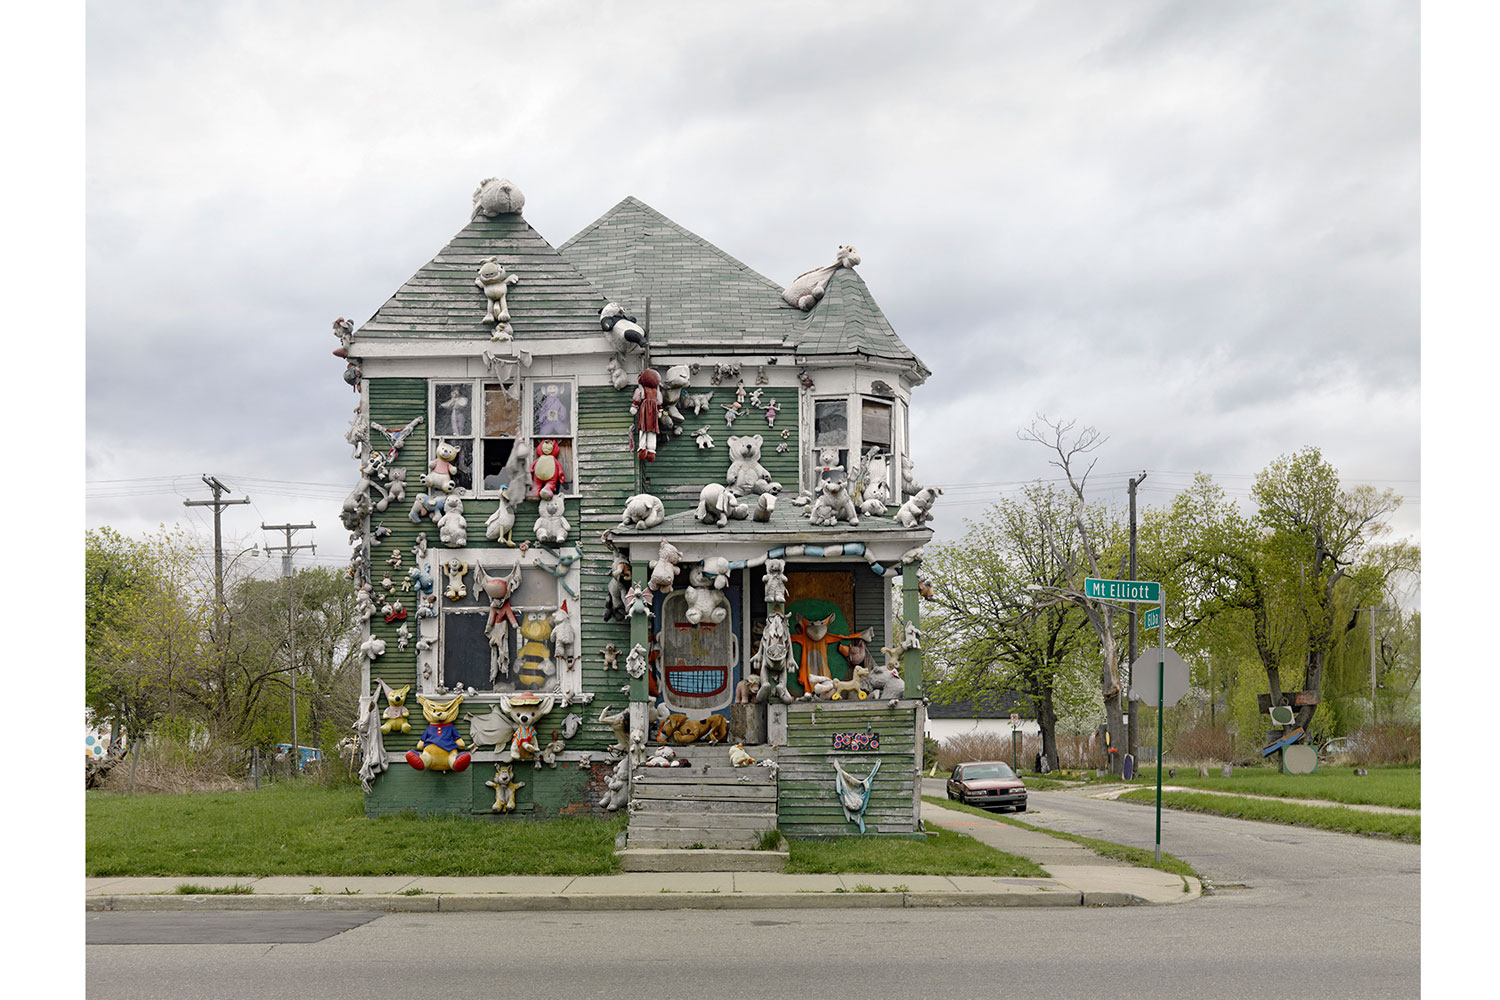 Animal House, Heidelberg Project, Detroit, 2010                                                              The Heidelberg Project, now in its 26th year, is an open-air art project in the heart of an urban community on Detroit's east side. Tyree Guyton, founder and artistic director, uses everyday discarded objects to create a two-block area full of color, symbolism and intrigue.